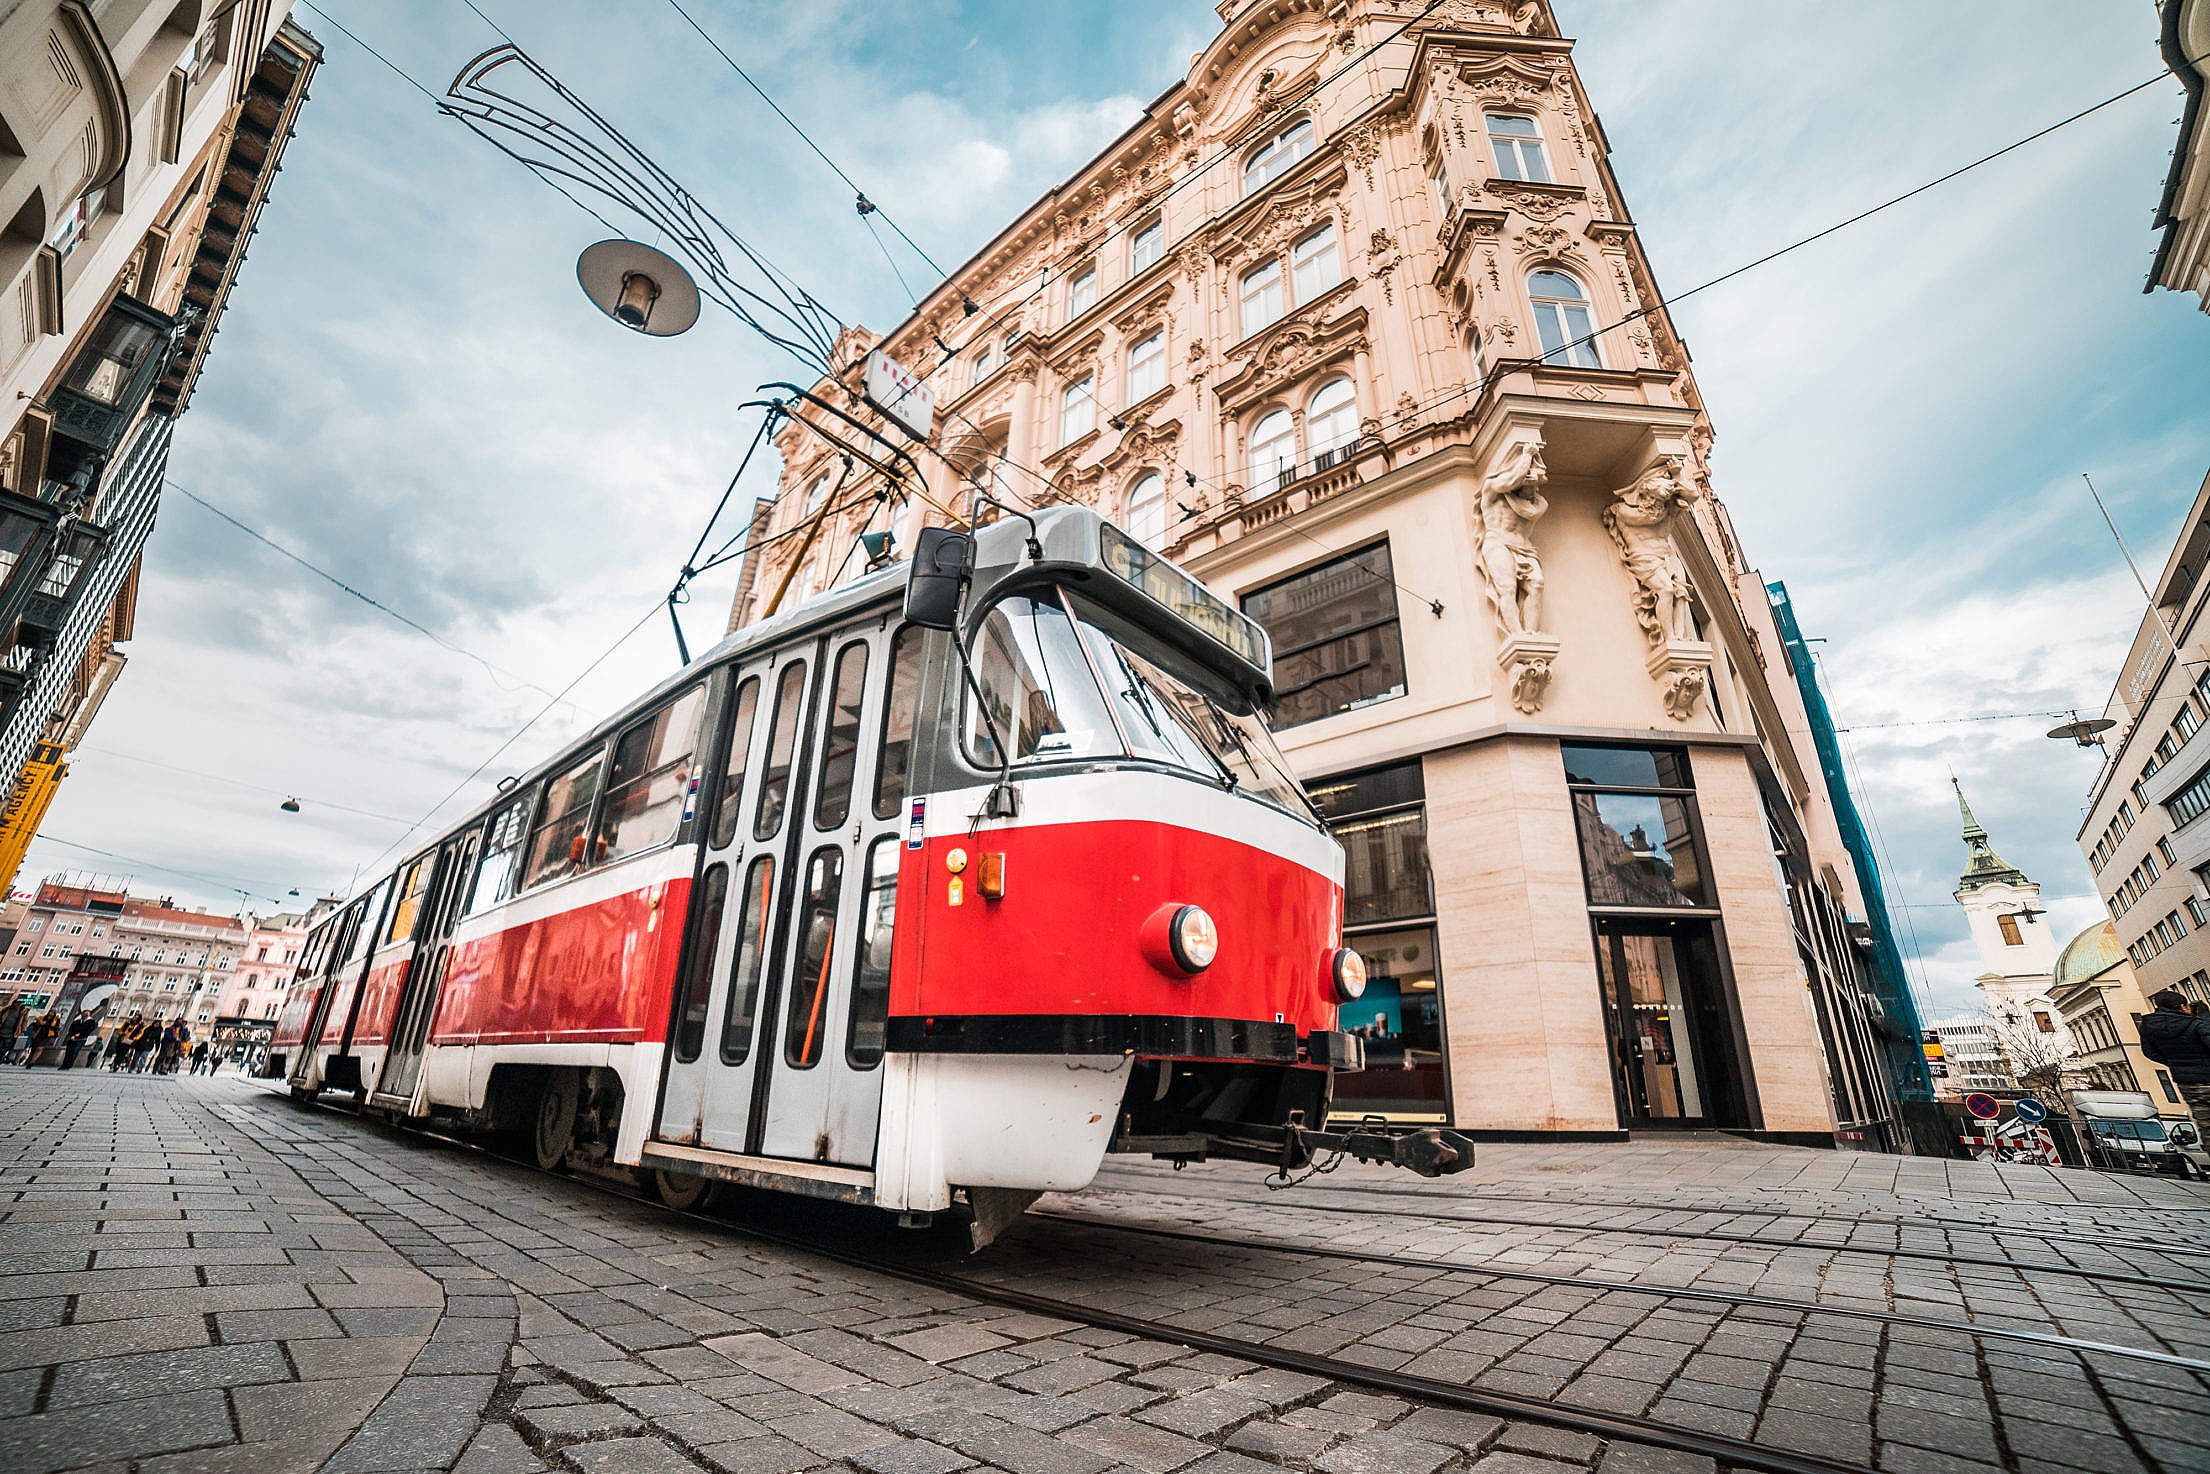 Typical Old Tram in Czech Republic Free Stock Photo